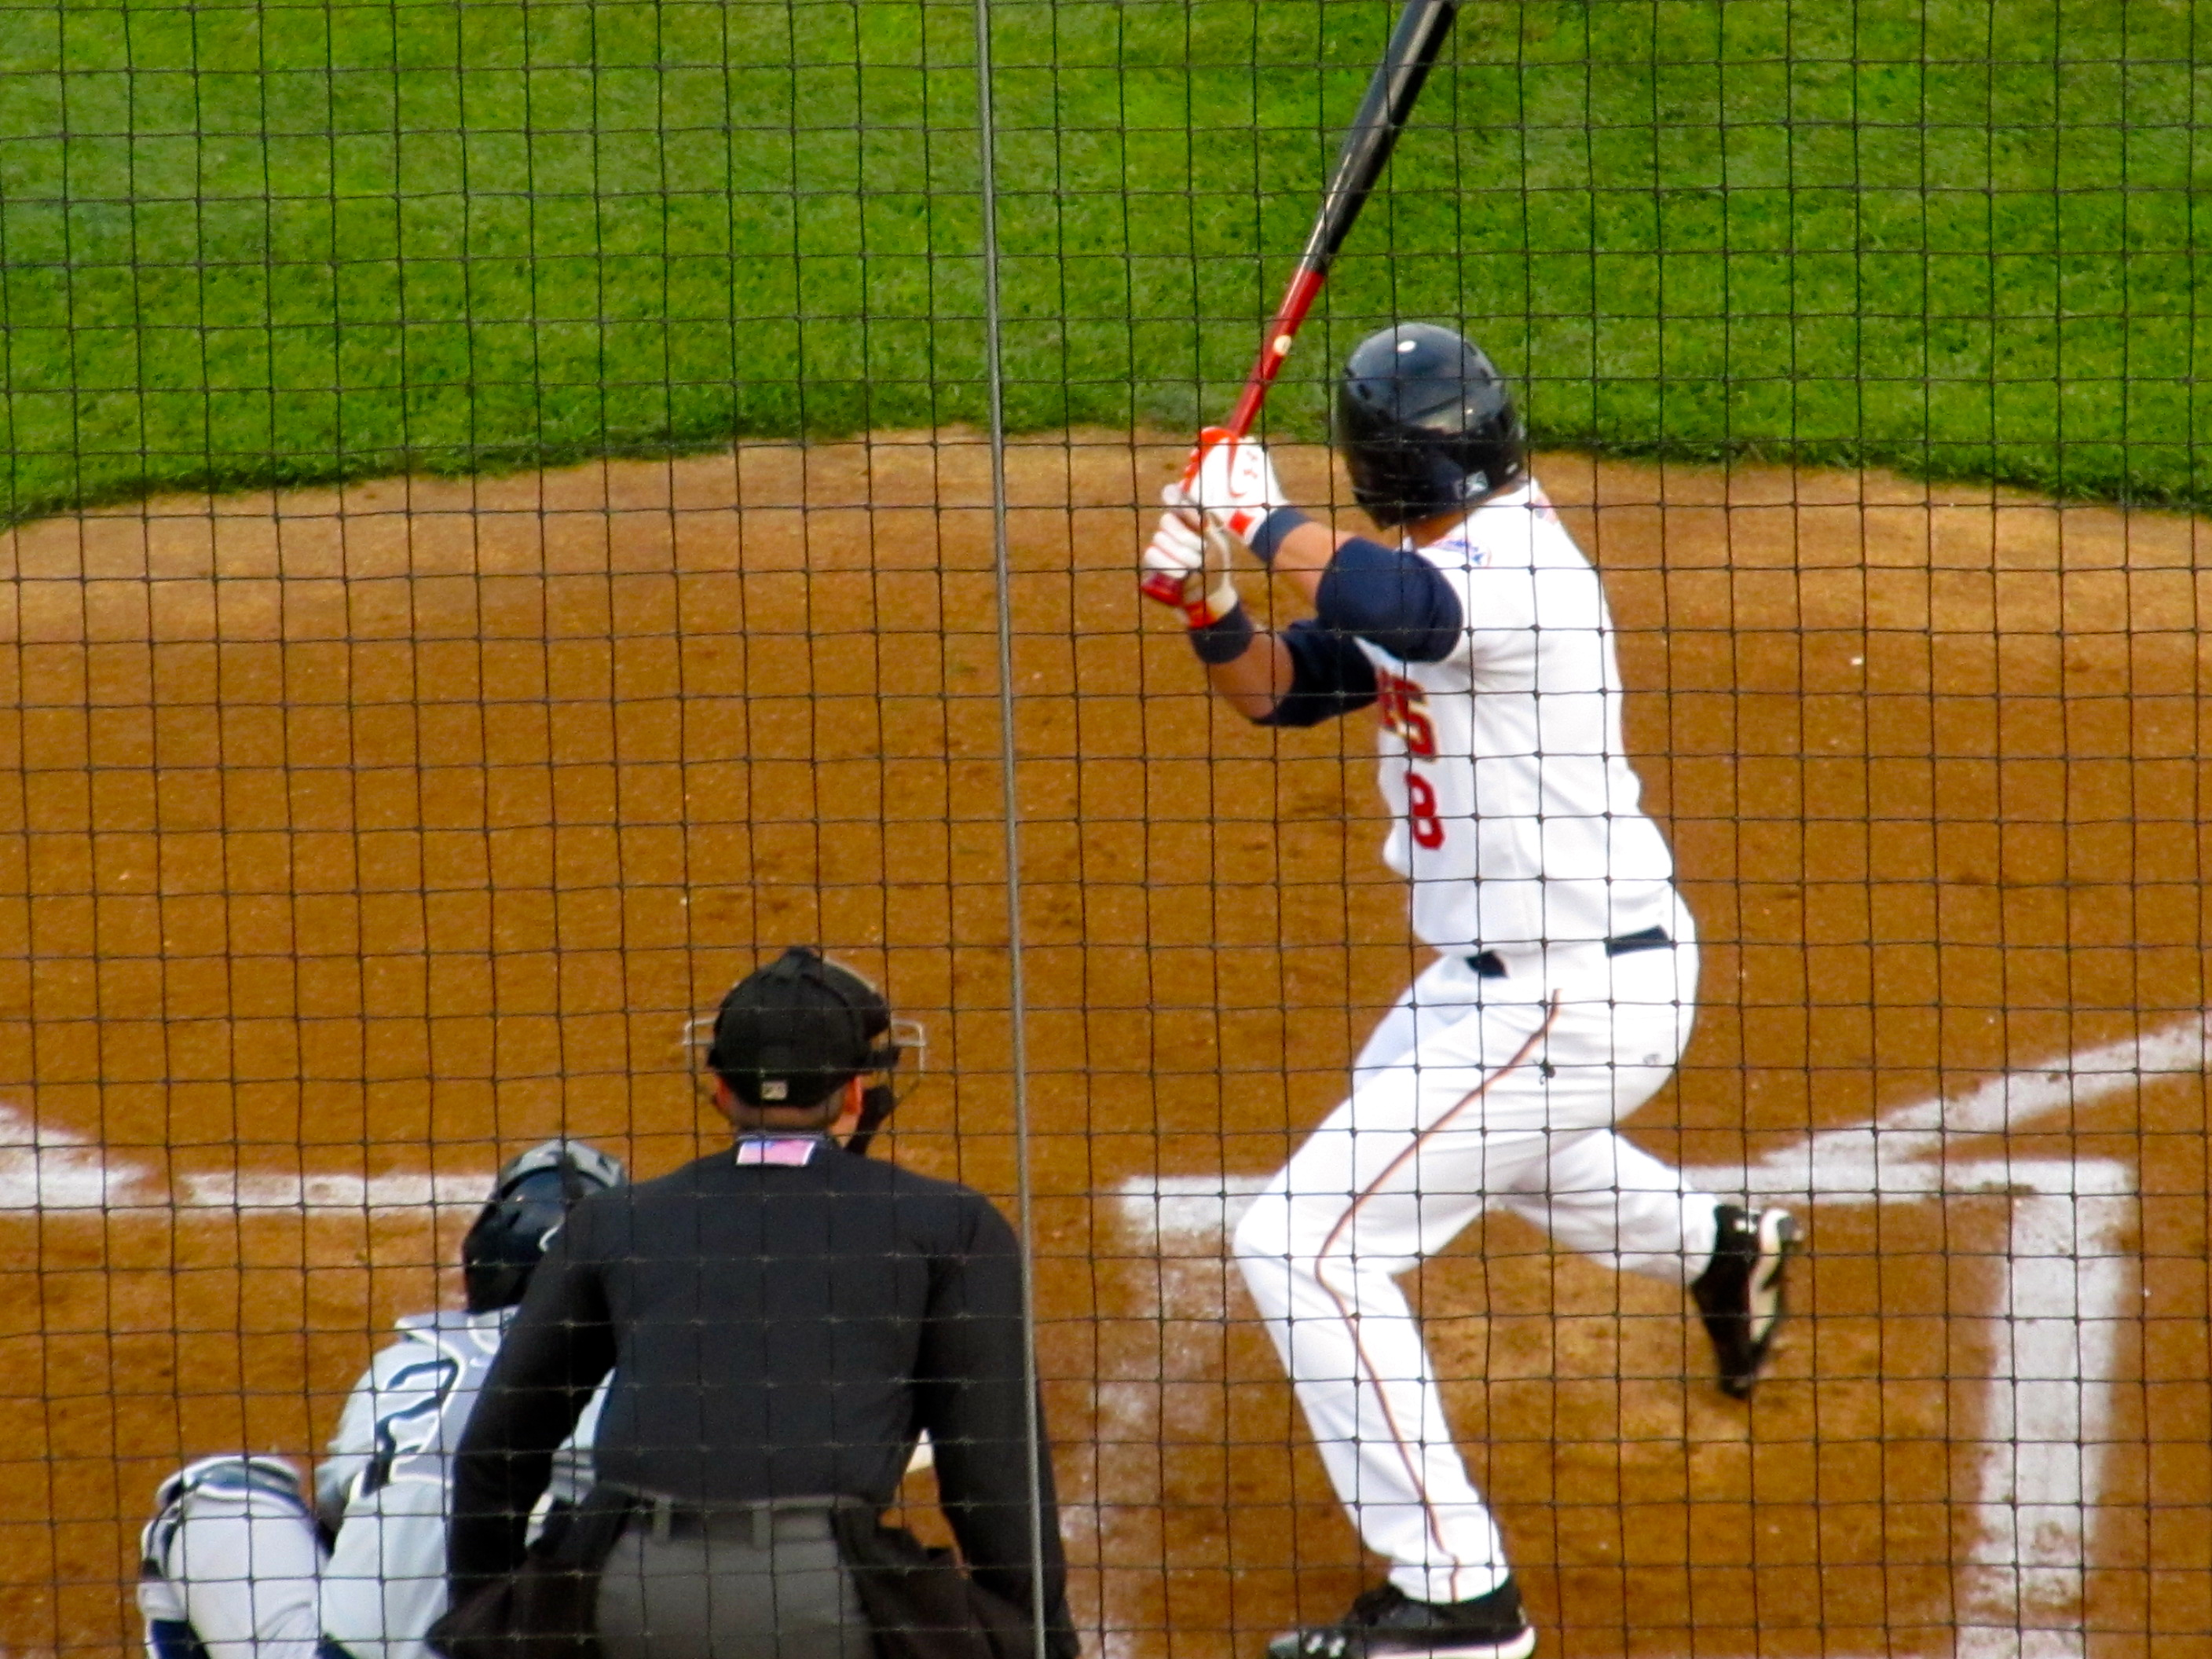 Brandon Nimmo batting (Photo by Jim Mancari)